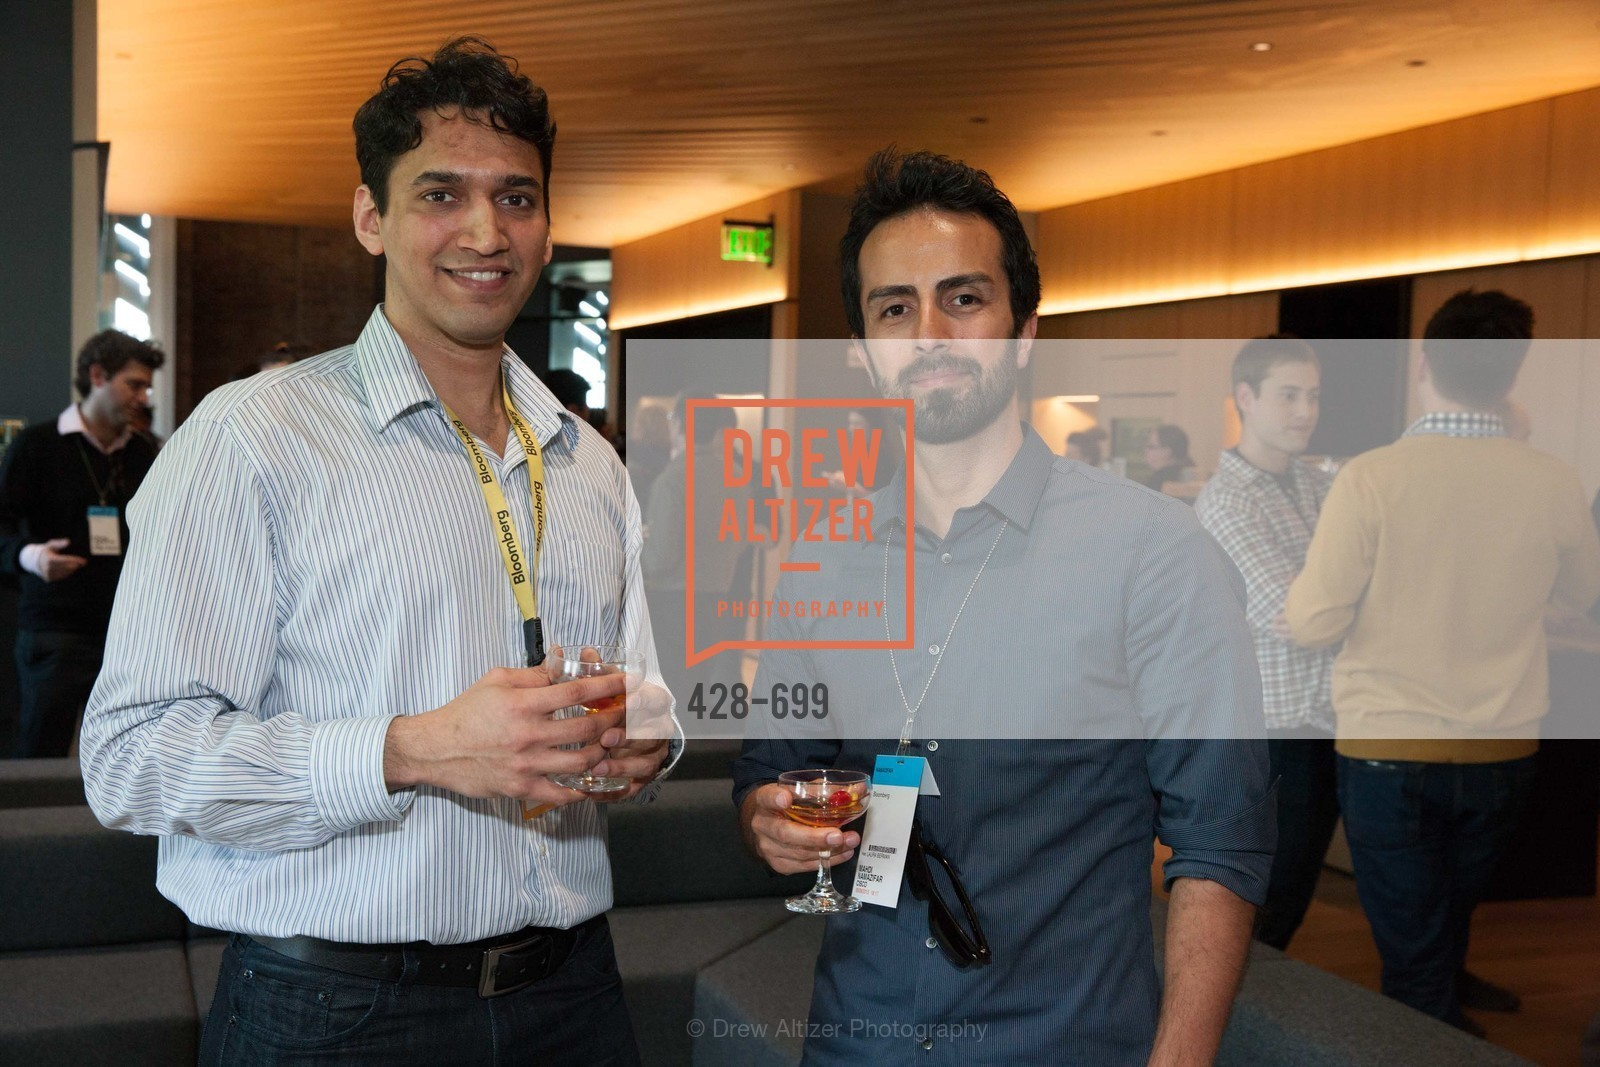 Densel Santhmayor, Mahdi Namazifar, BLOOMBERG Office Opening, US, May 6th, 2015,Drew Altizer, Drew Altizer Photography, full-service agency, private events, San Francisco photographer, photographer california